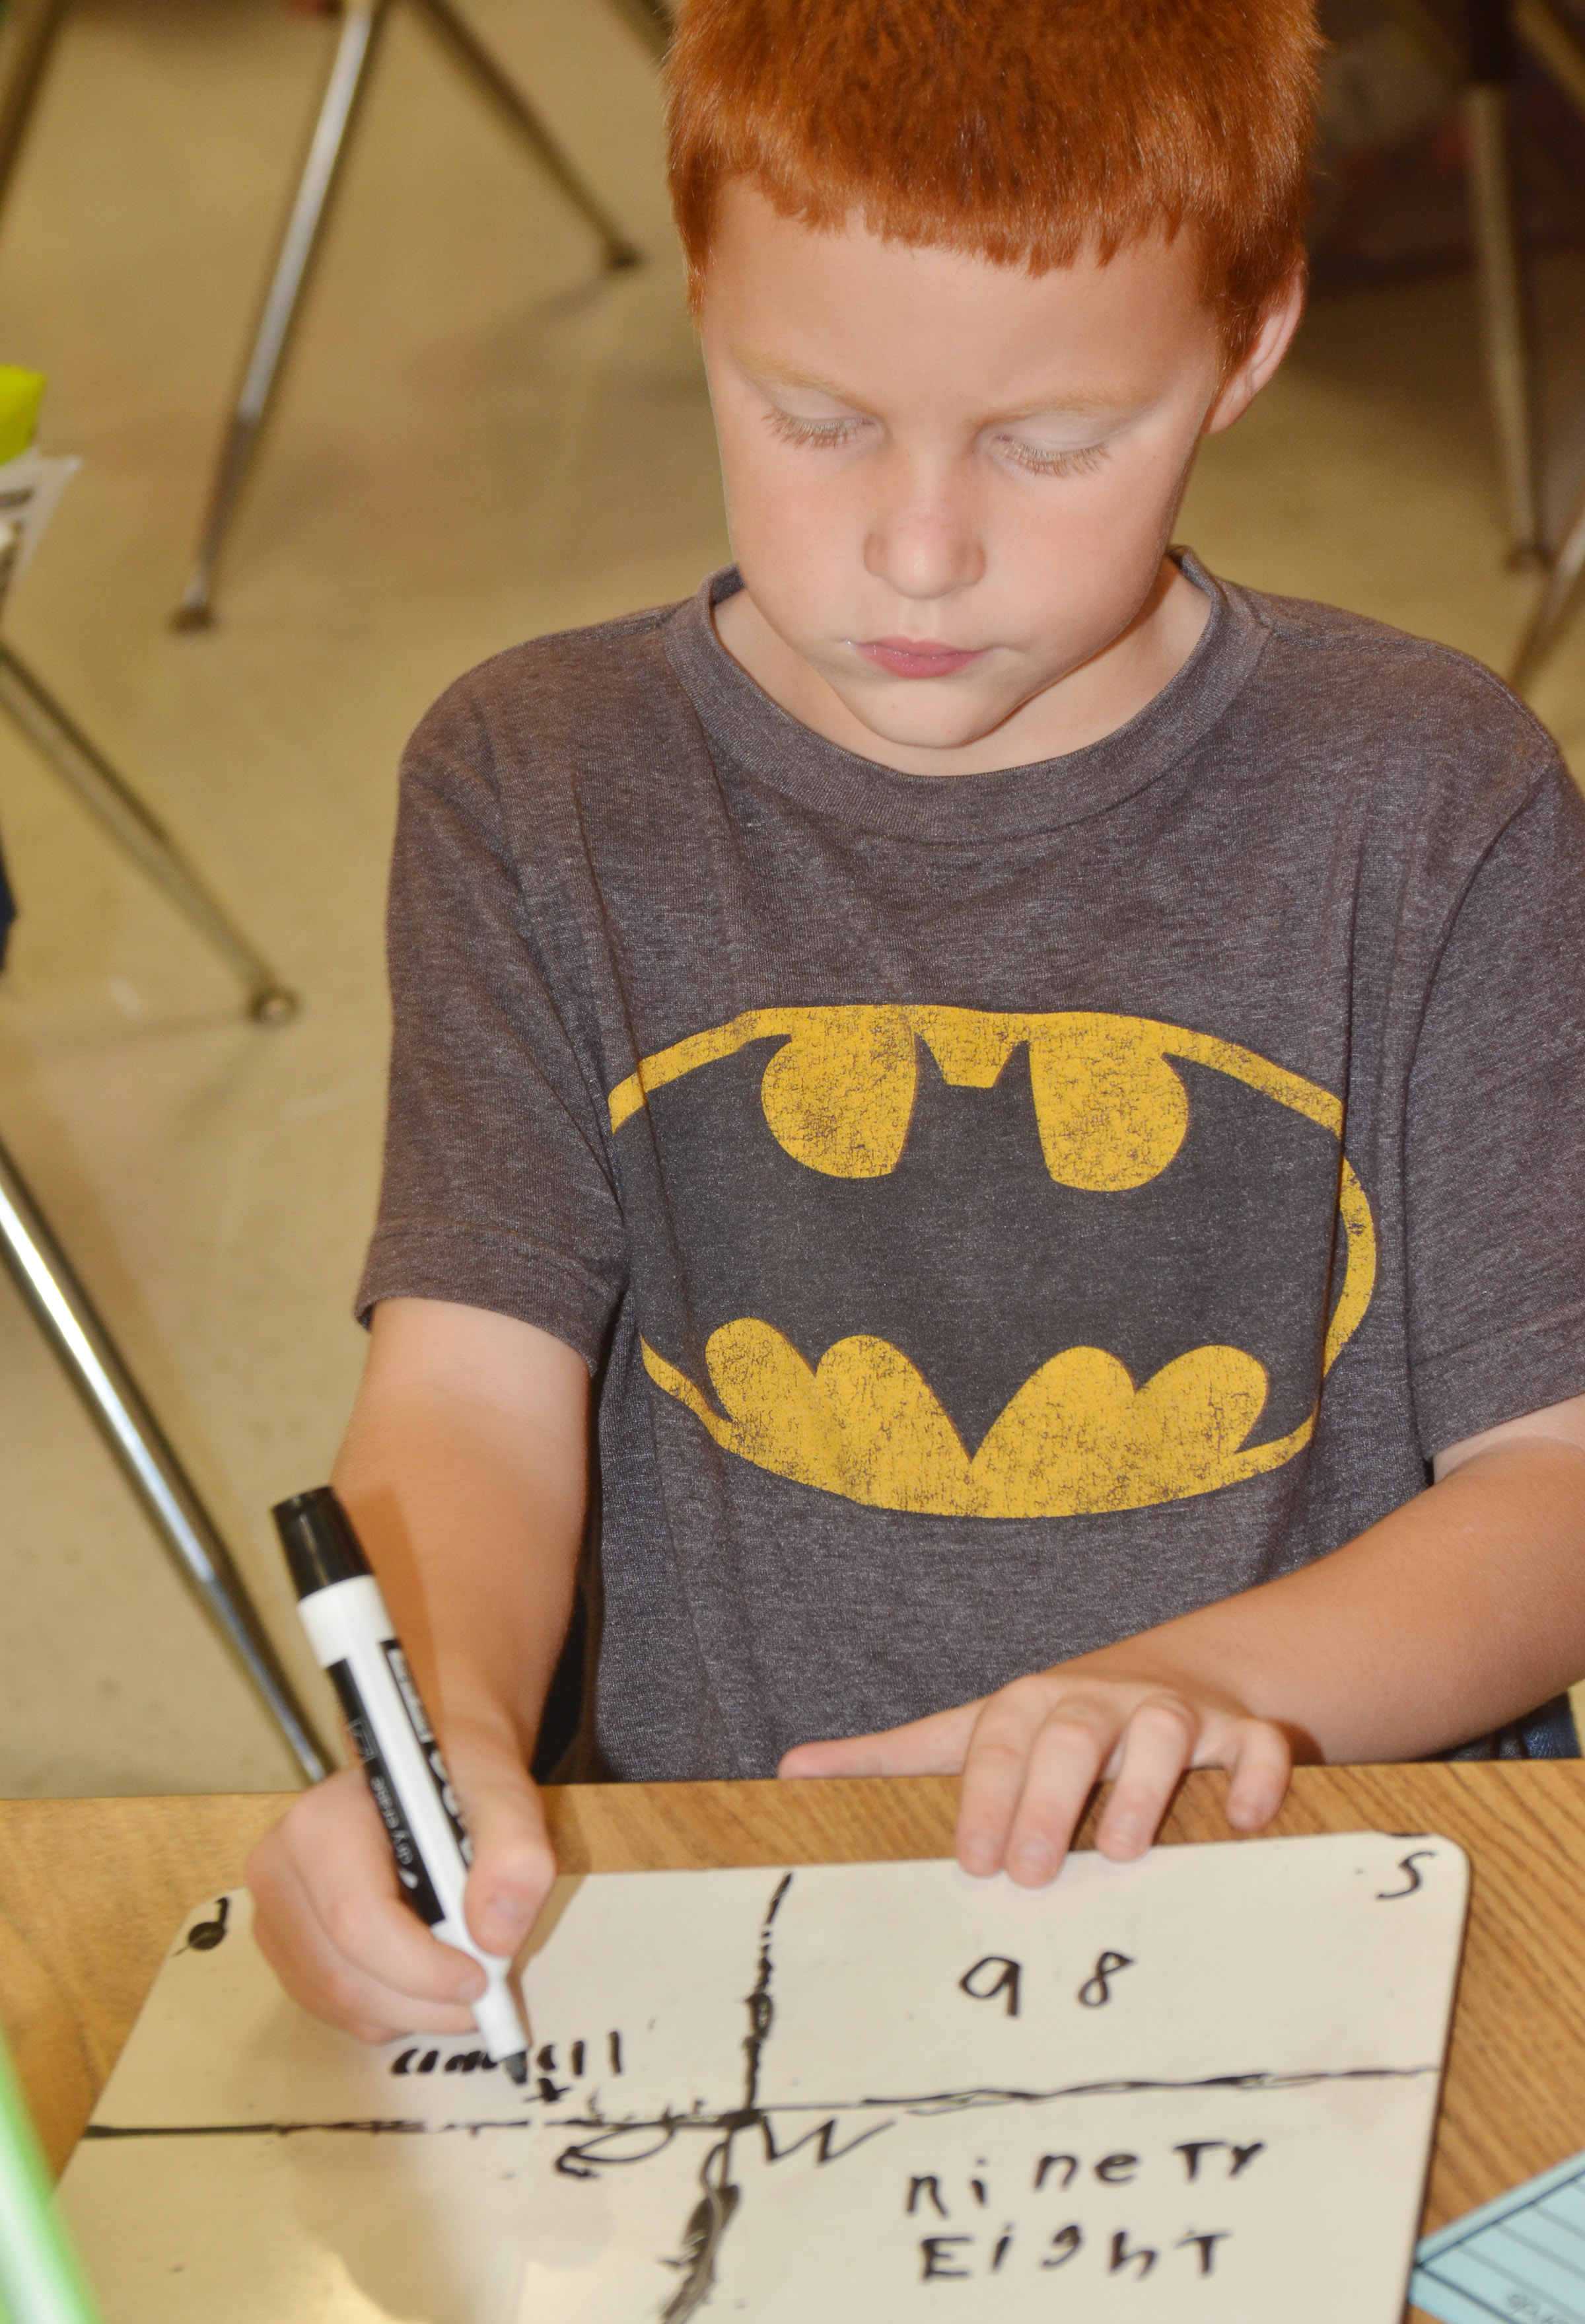 CES second-grader Carter Wethington practices writing base ten blocks.